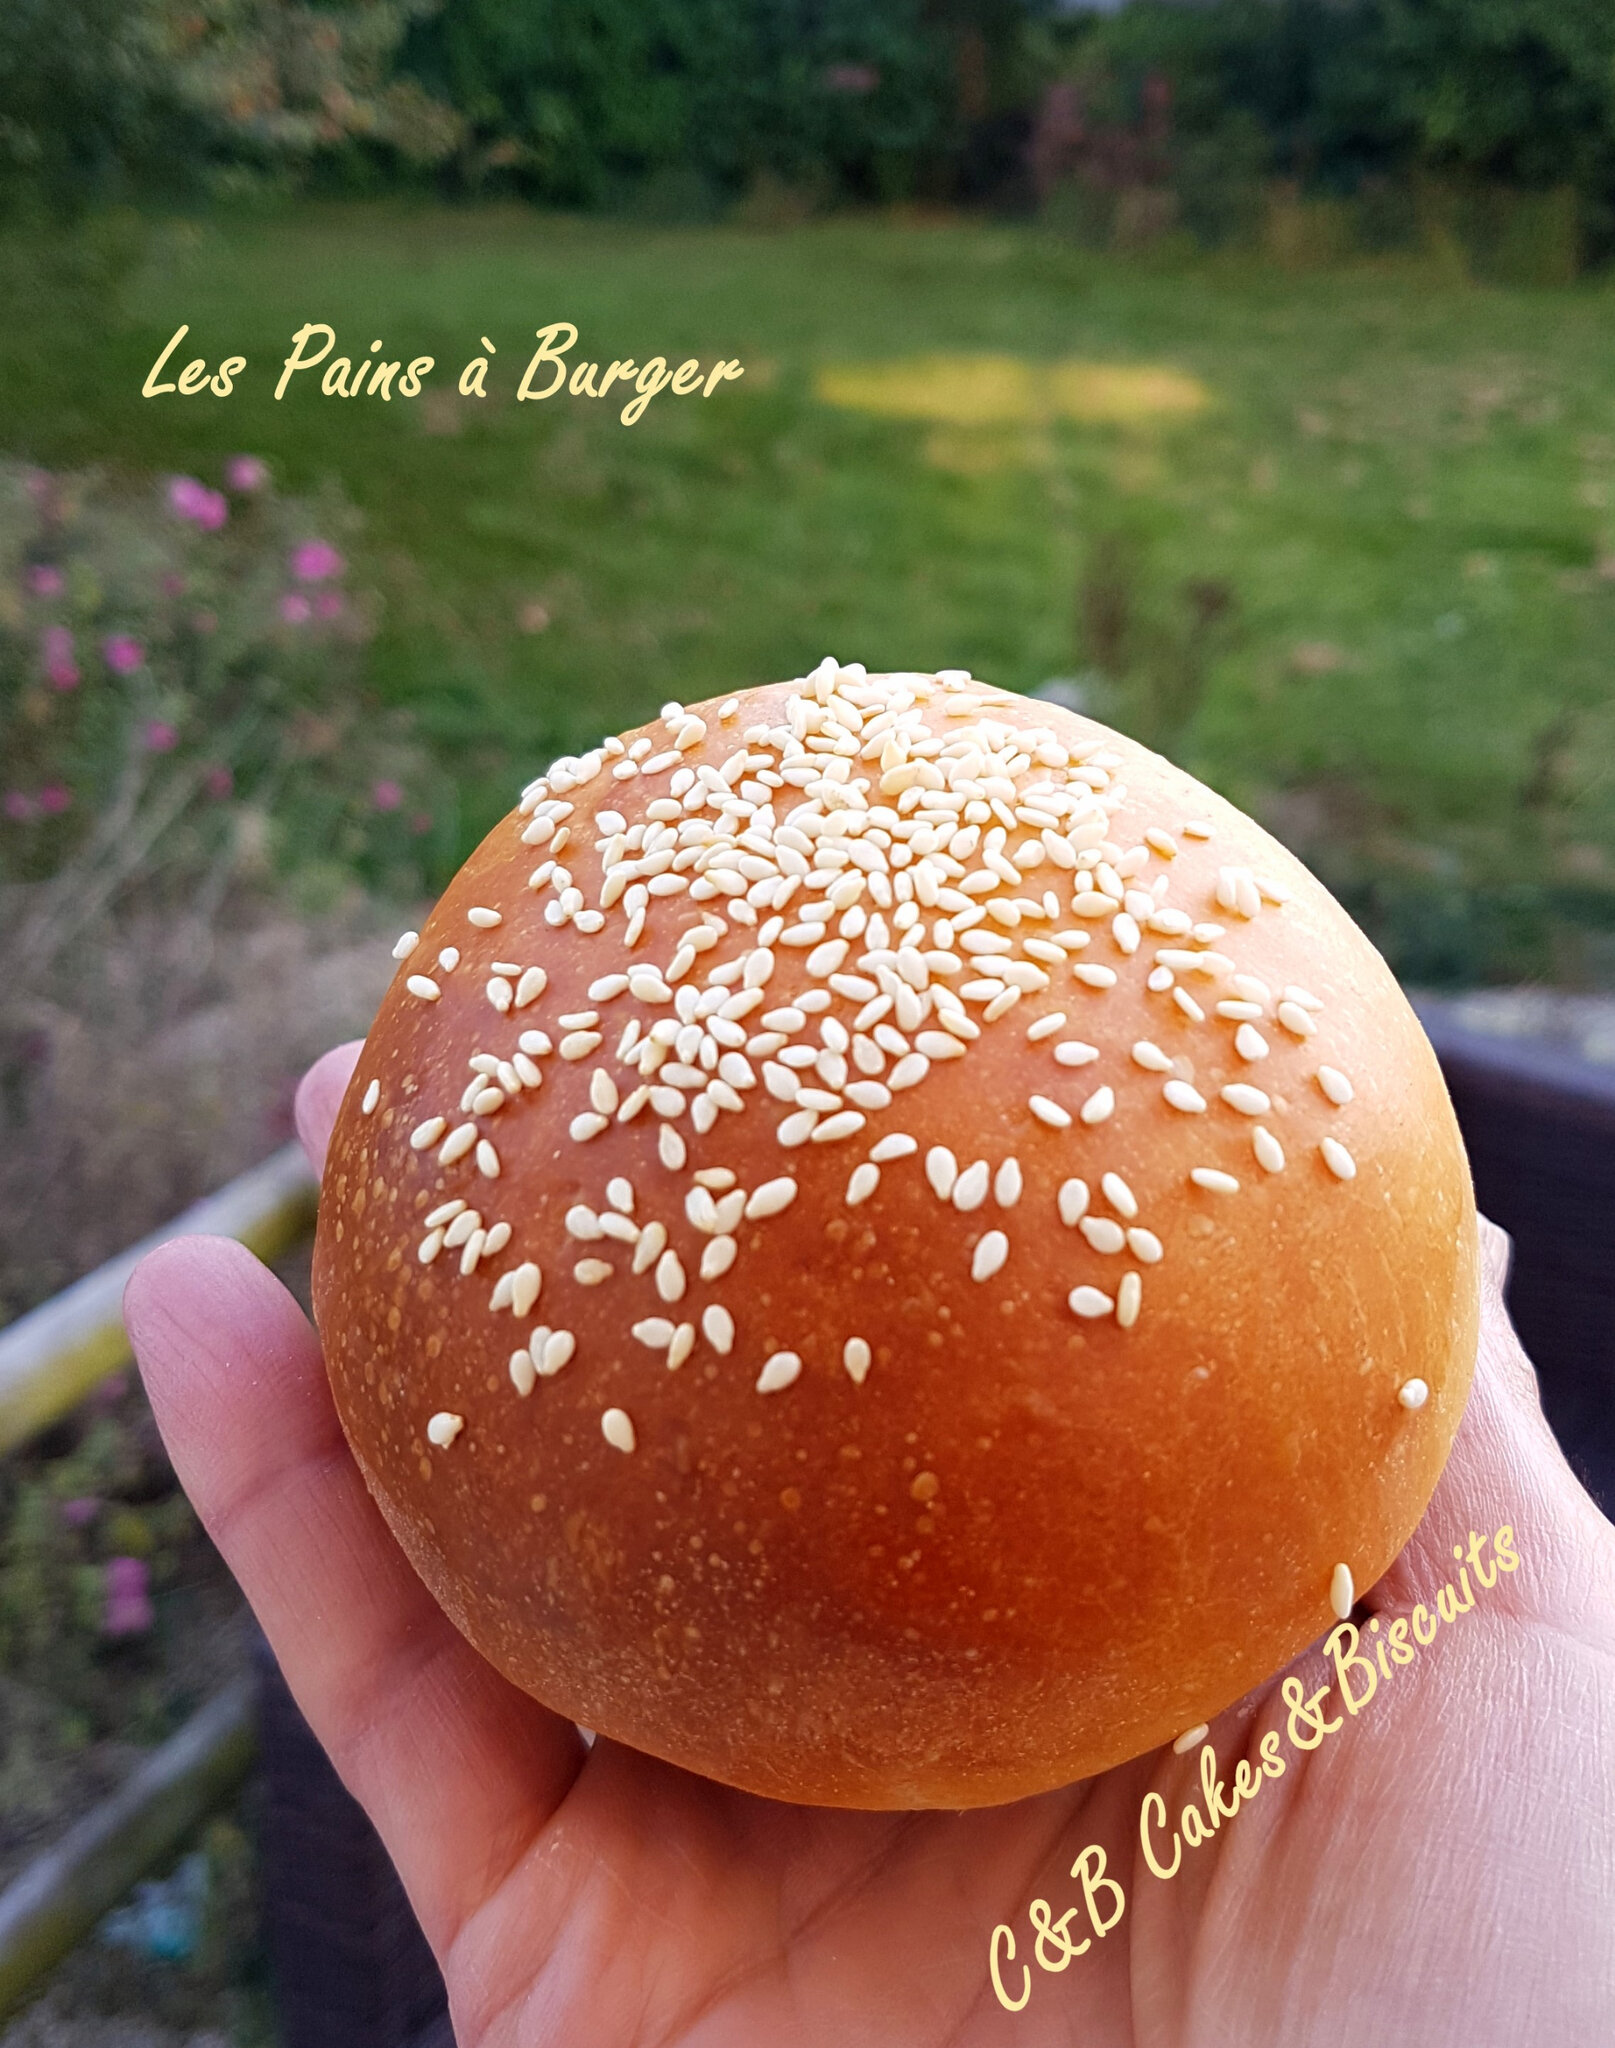 Les Pains à Burger